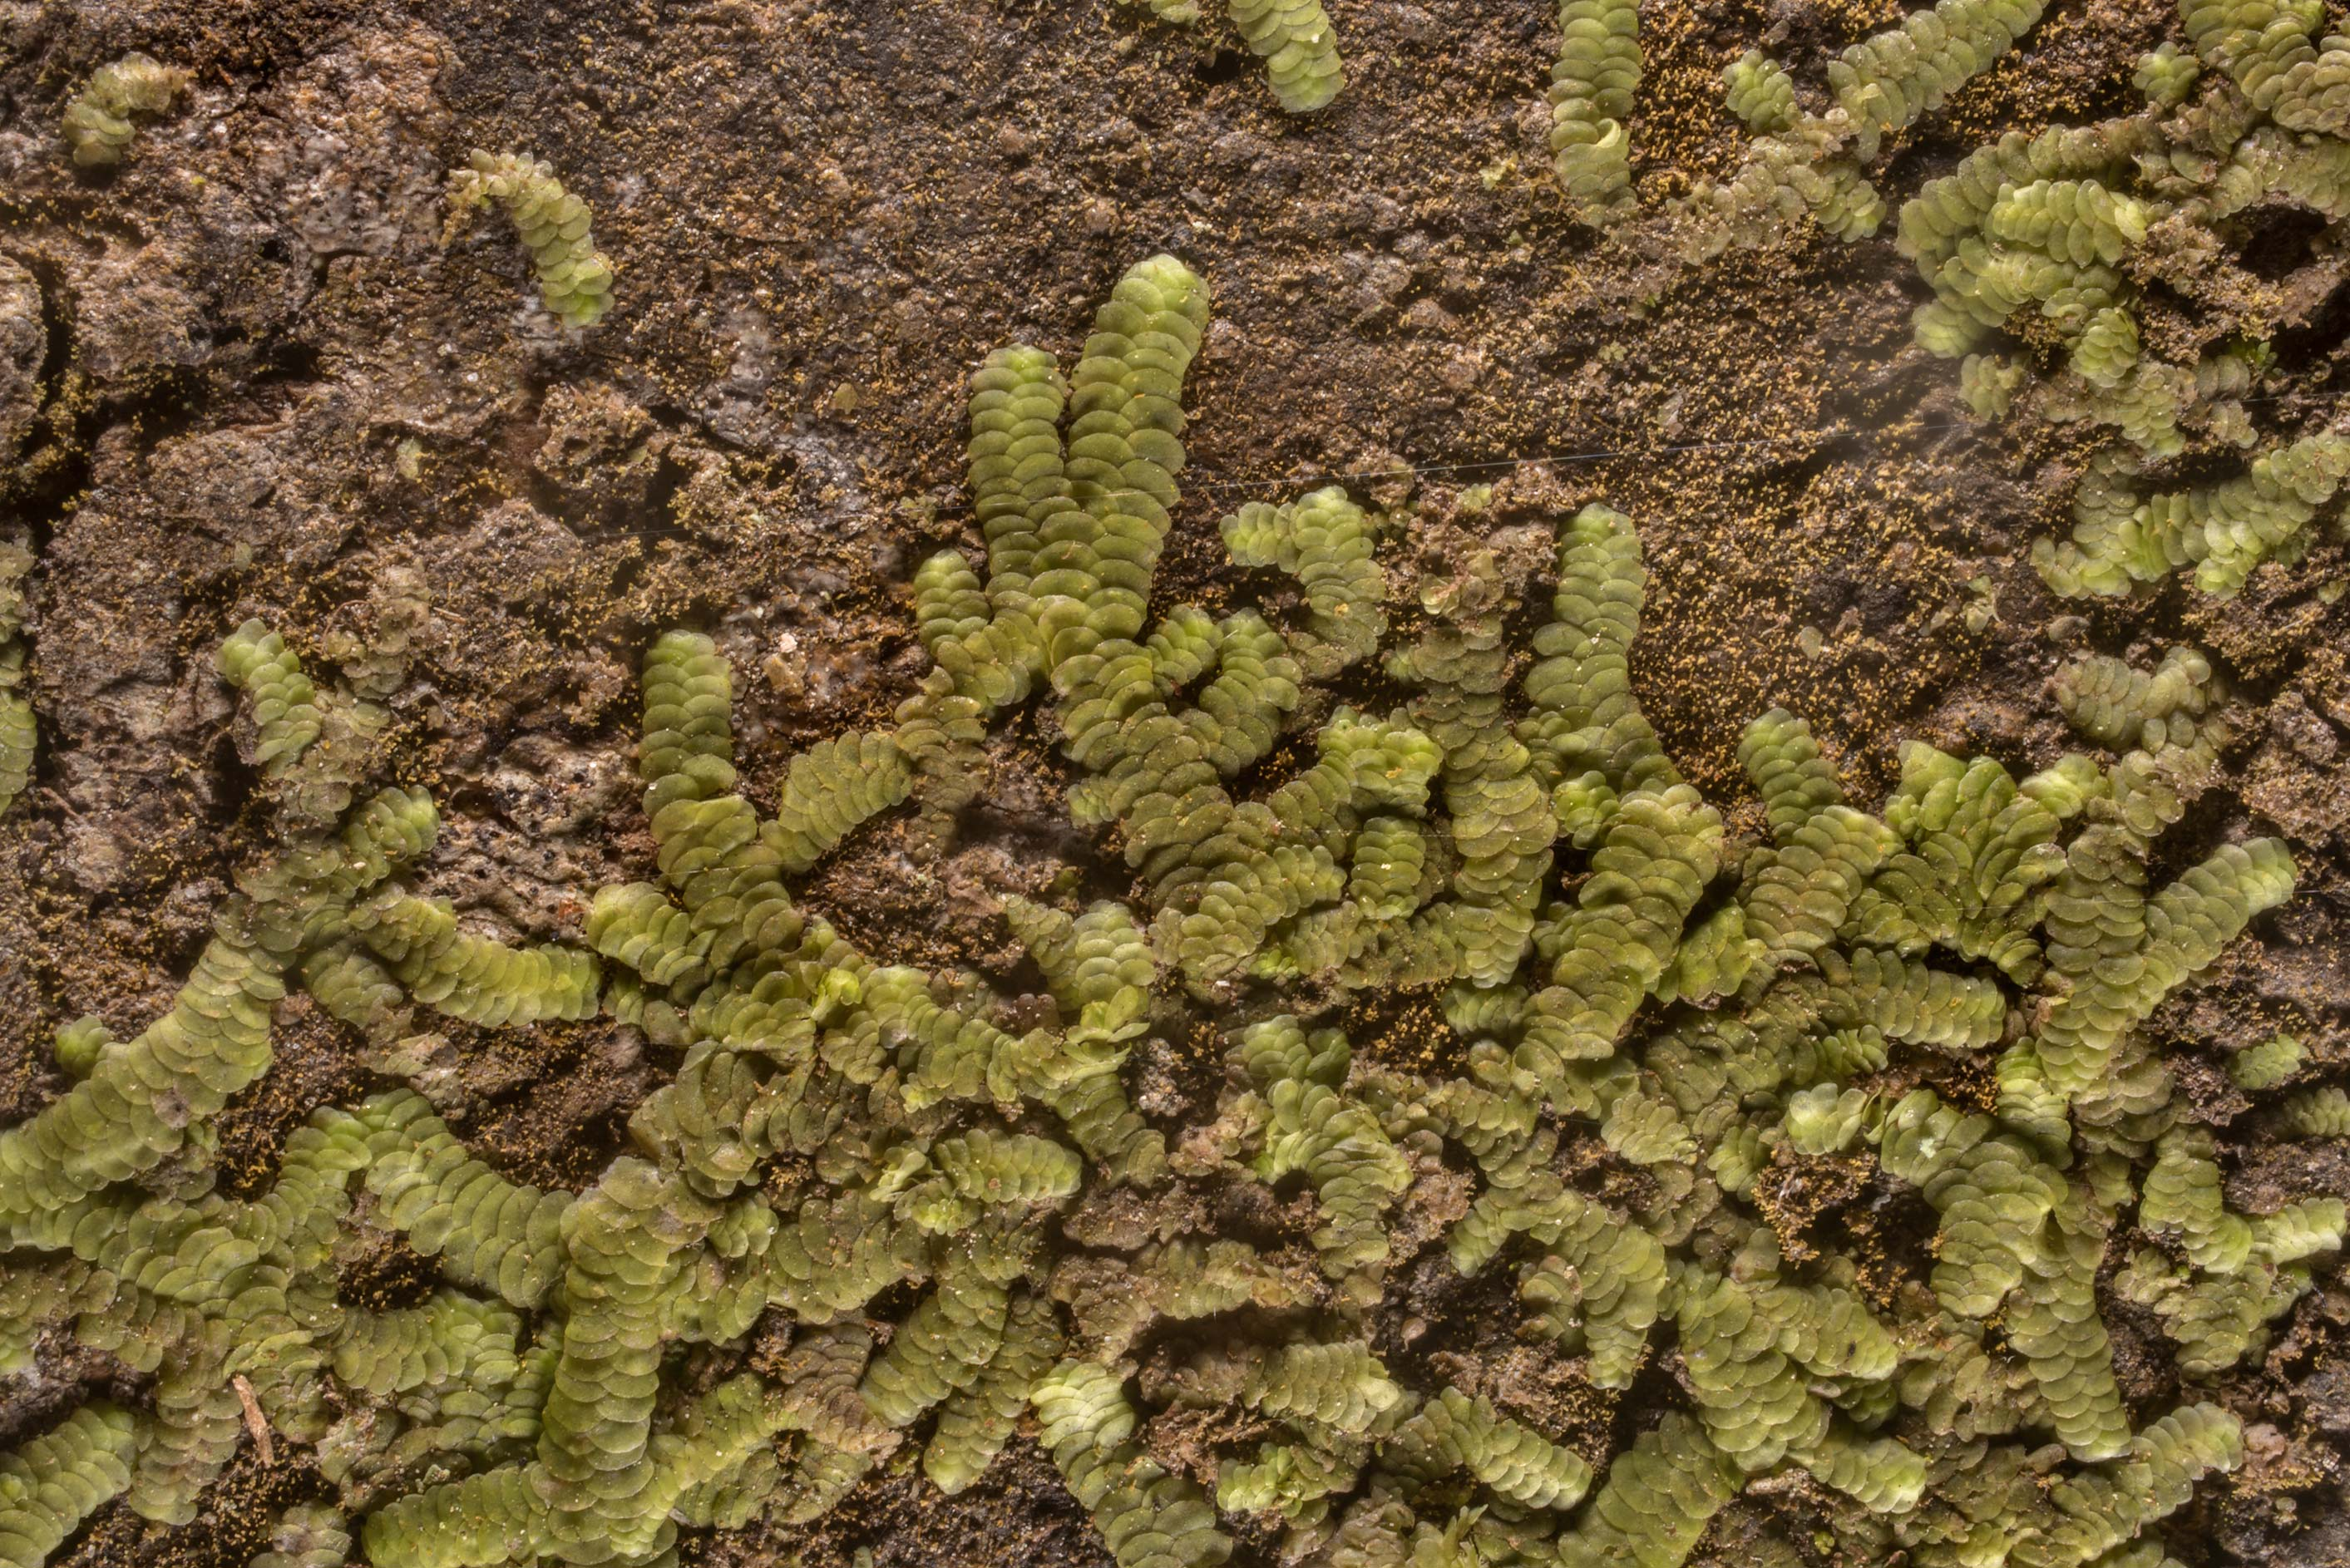 Close-up of tiny green liverwort on smooth tree bark in Huntsville State Park. Texas